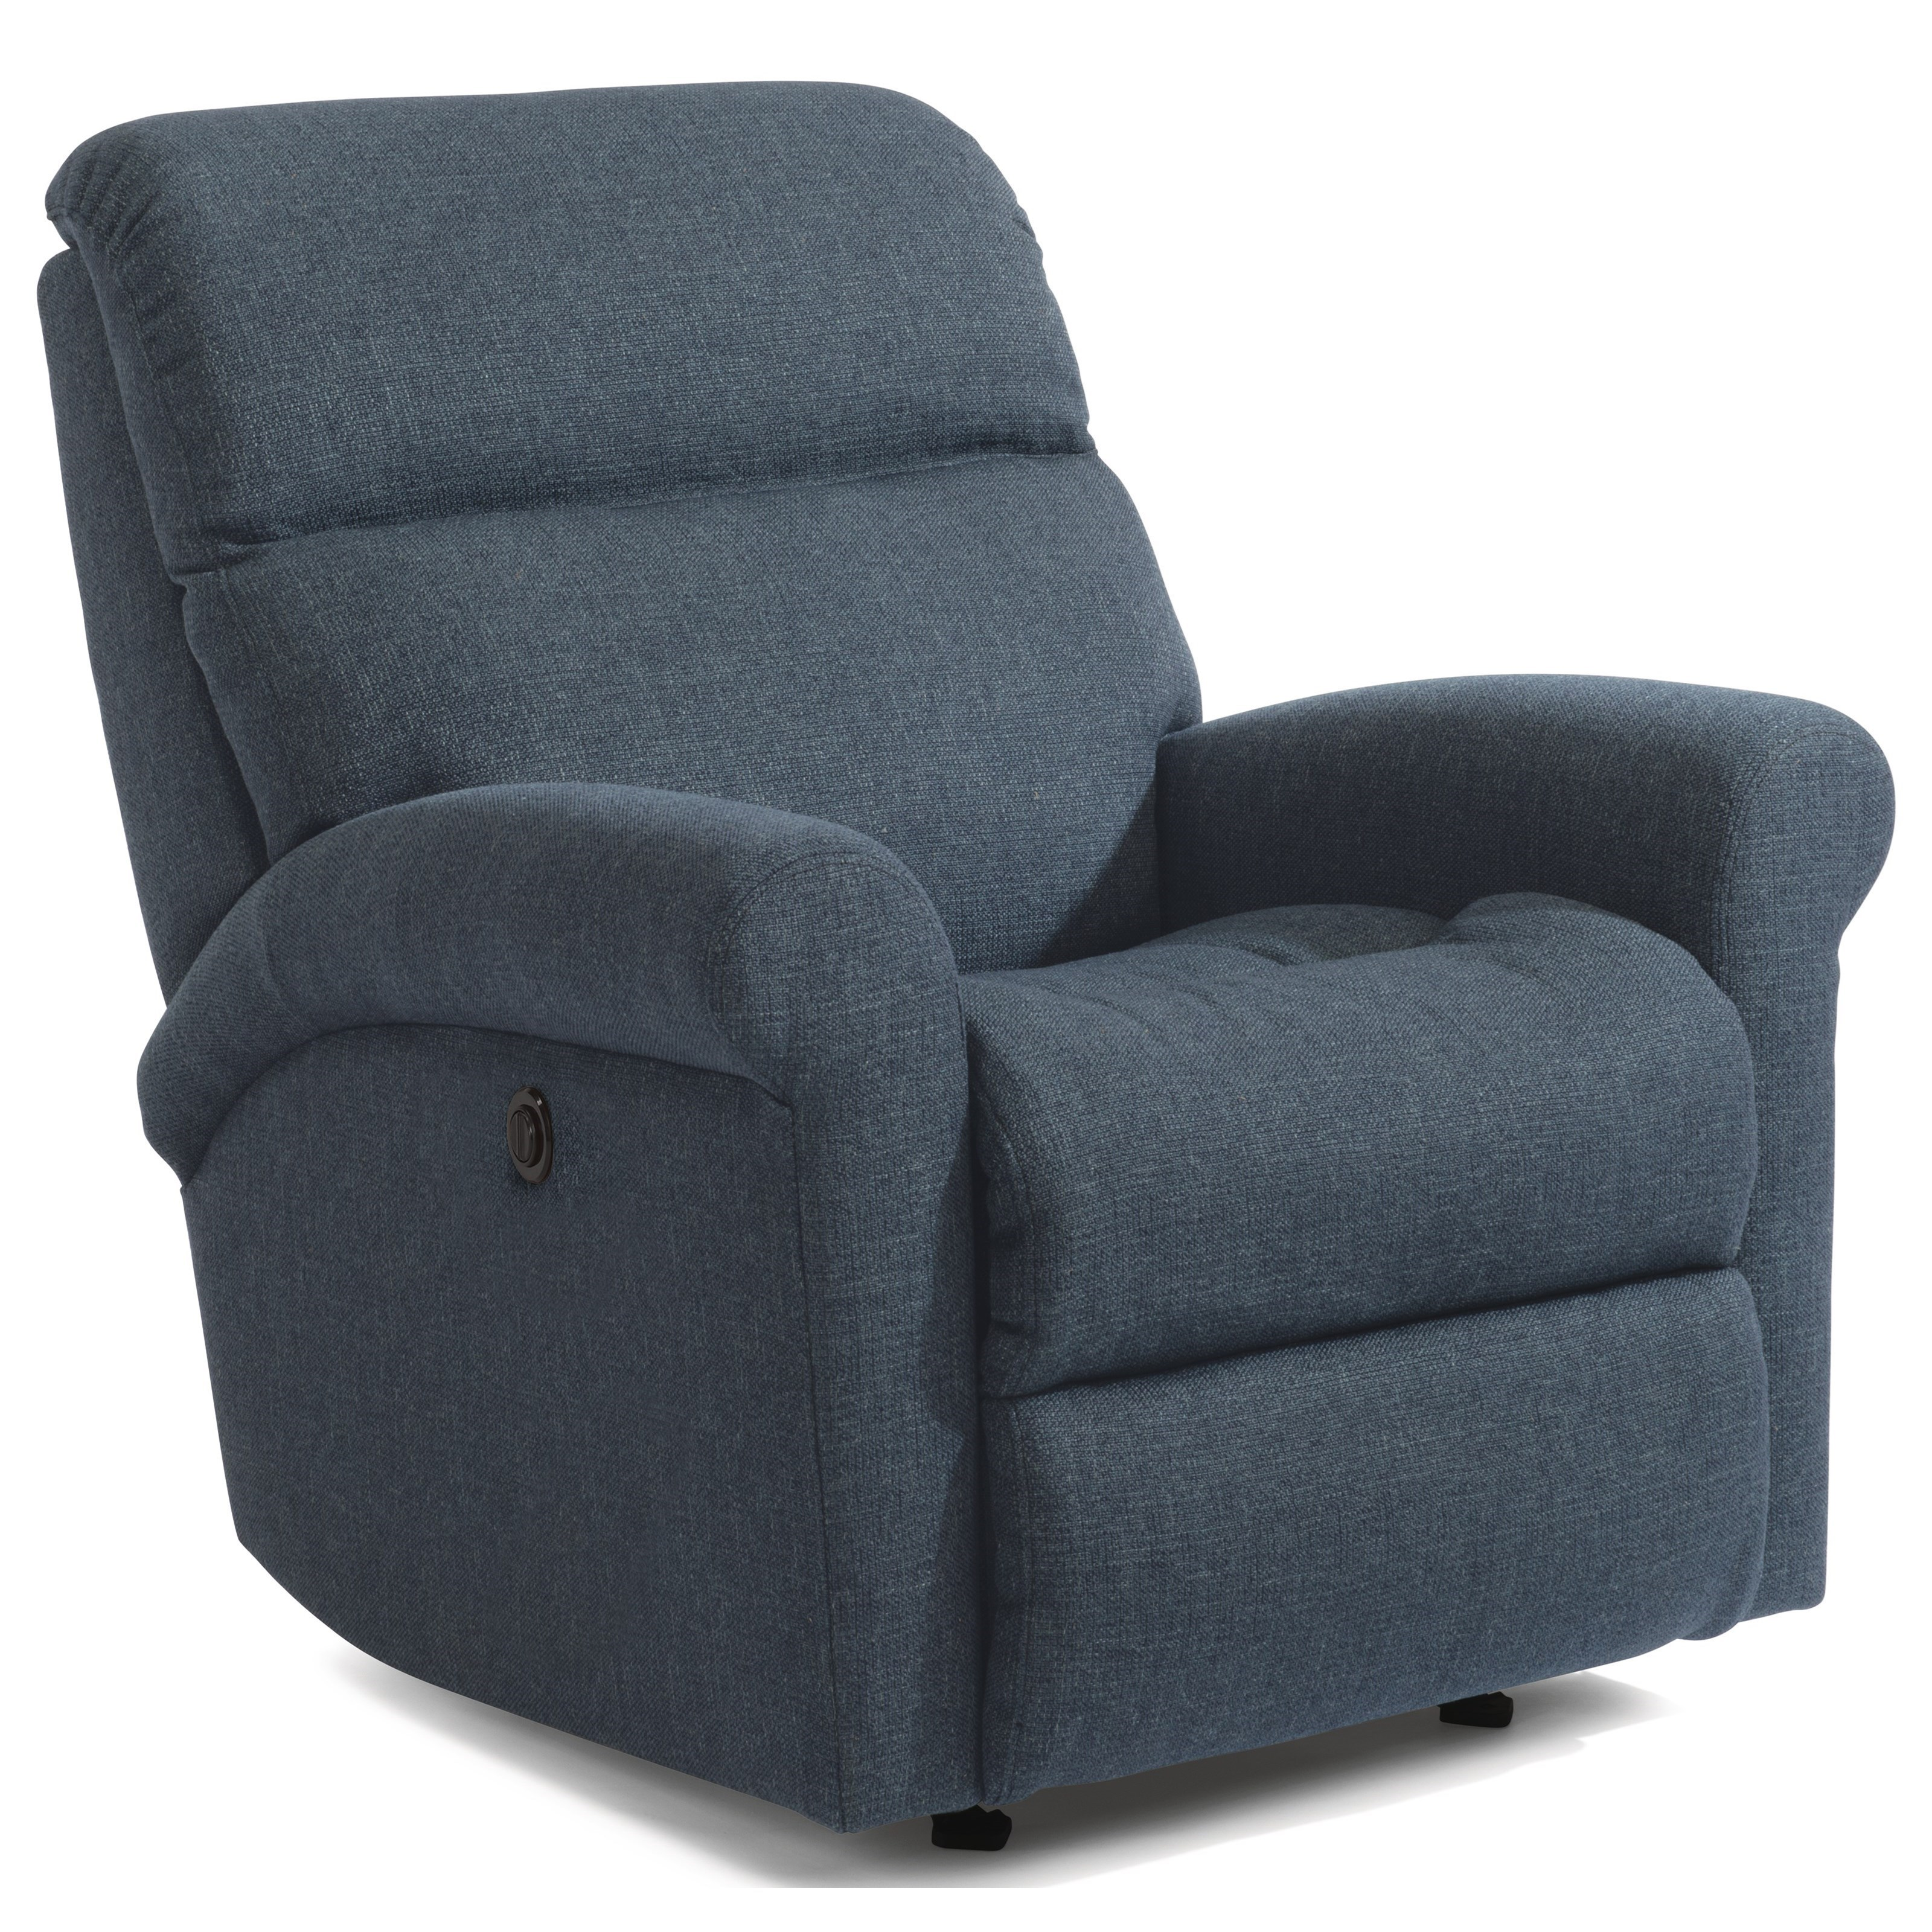 Davis Power Recliner with Power Headrest by Flexsteel at Mueller Furniture